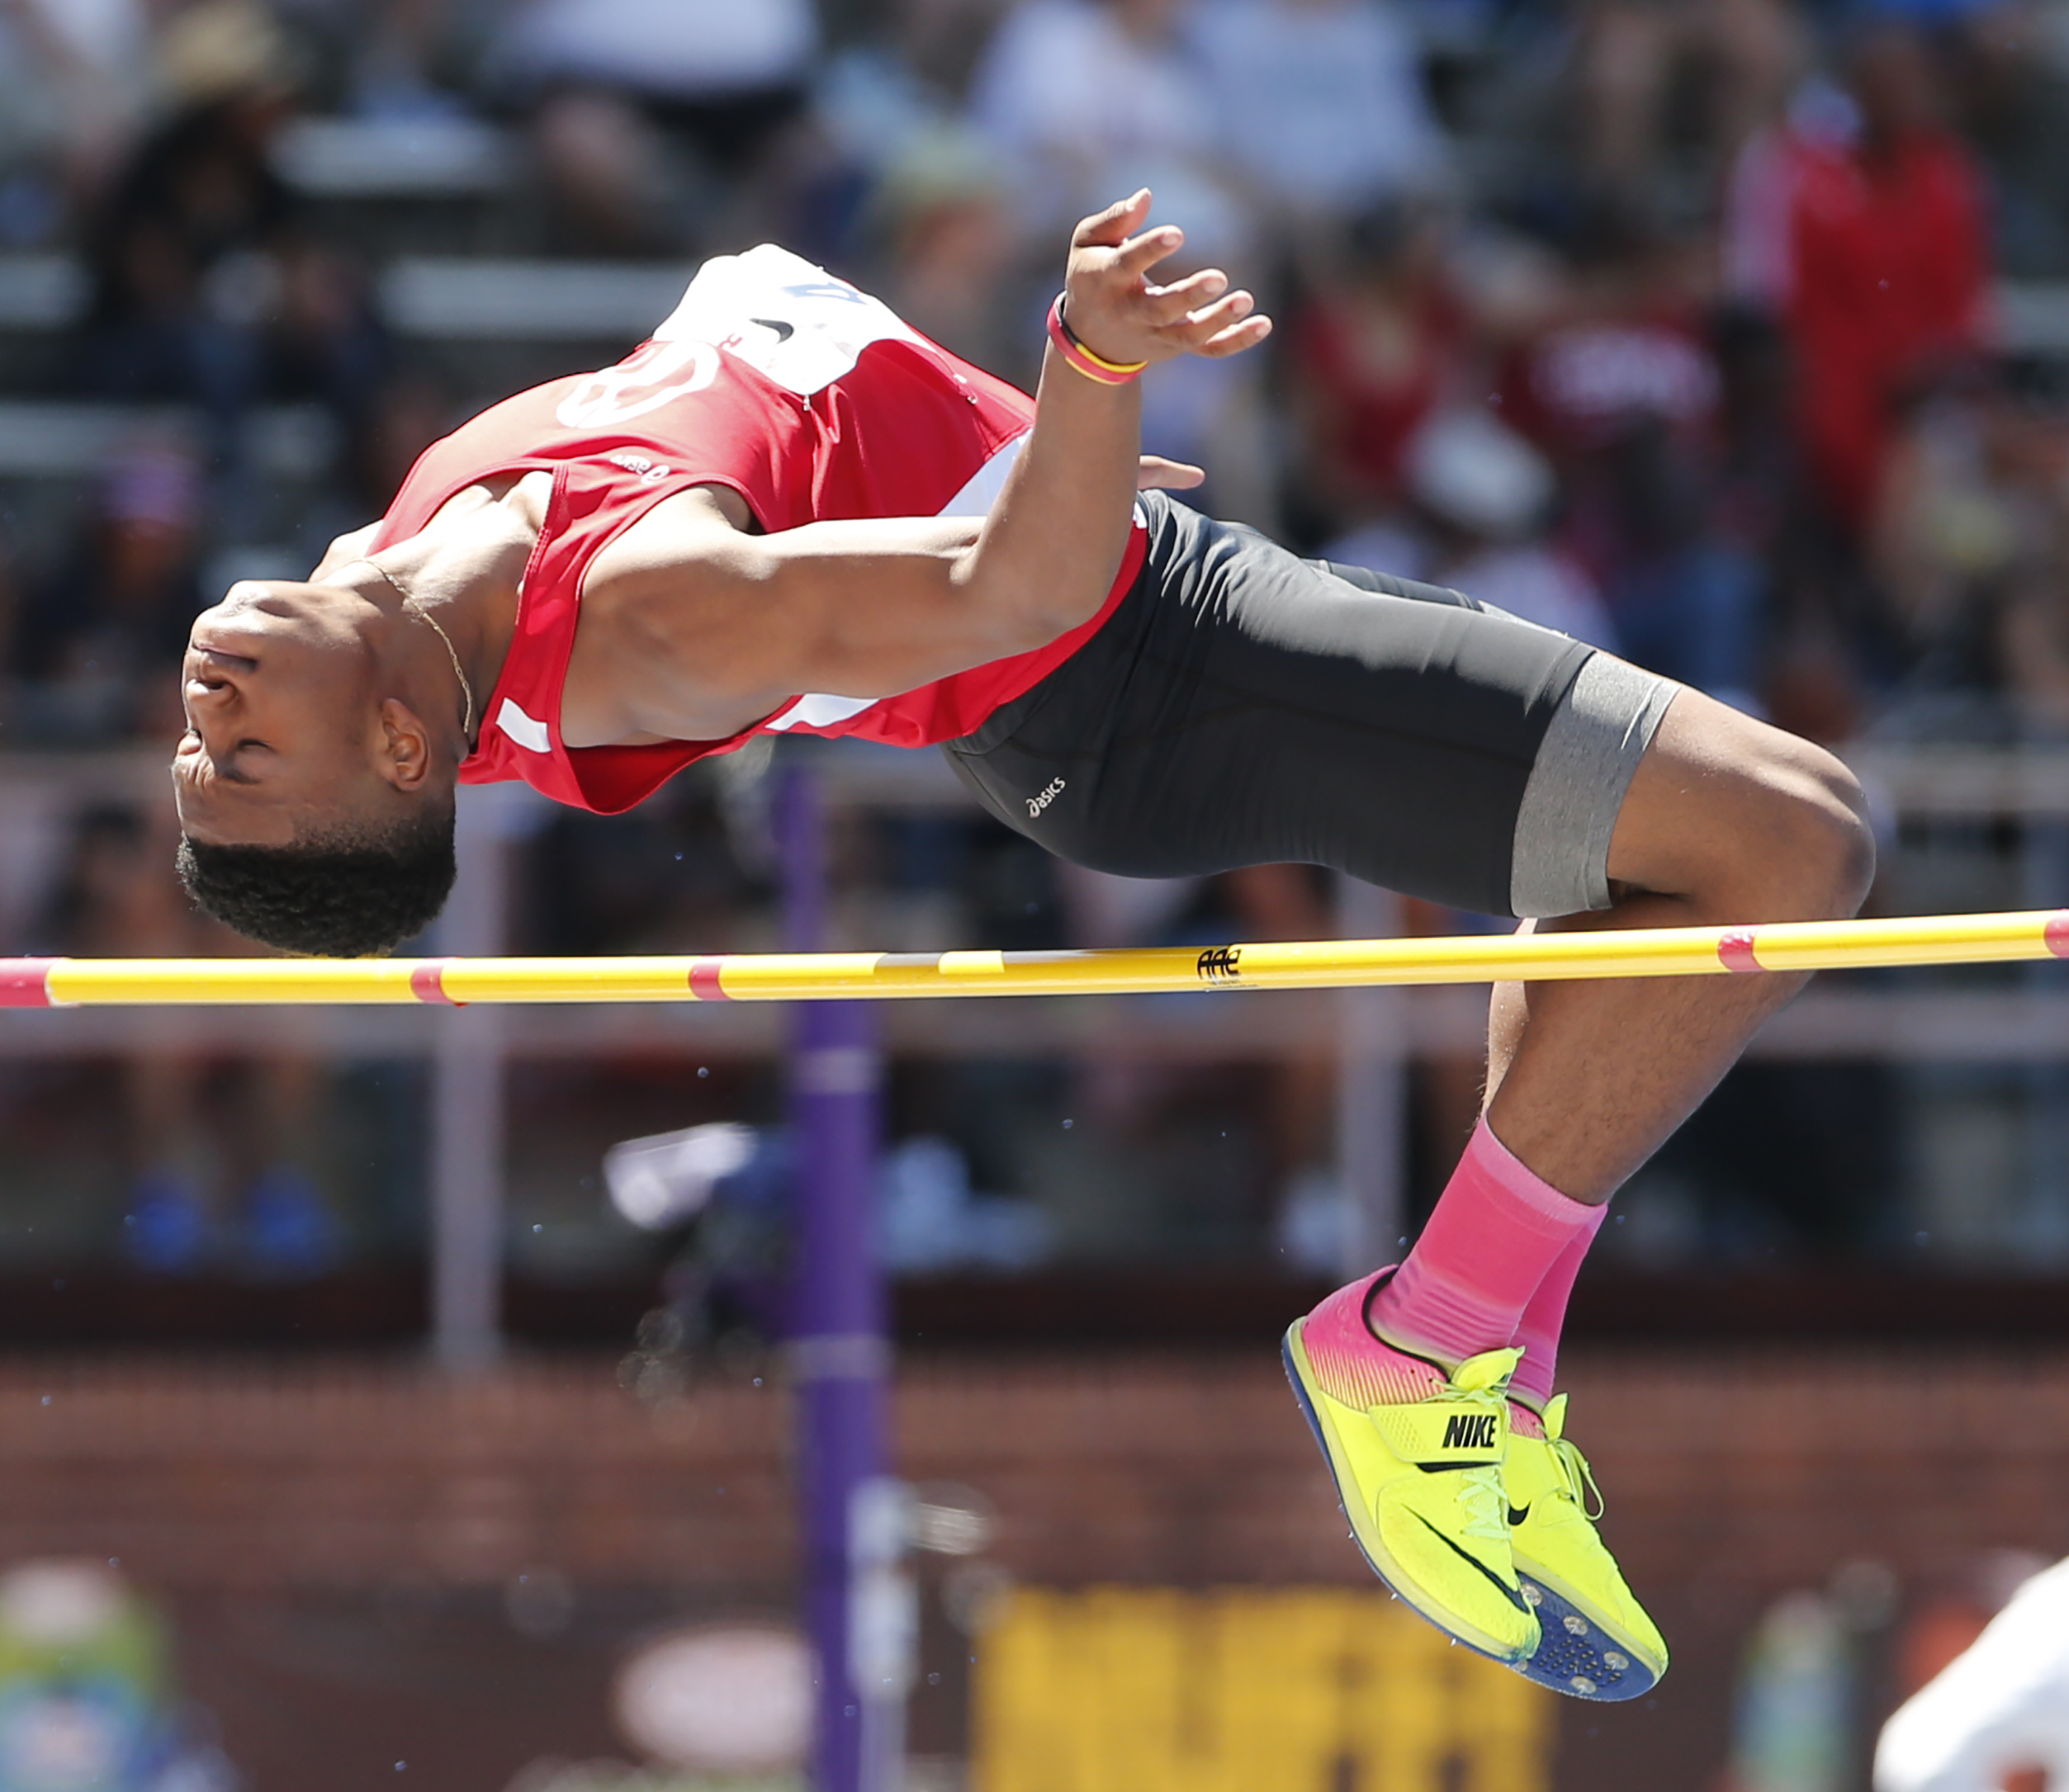 Garland competes in the high jump at the 2017 Penn Relays.